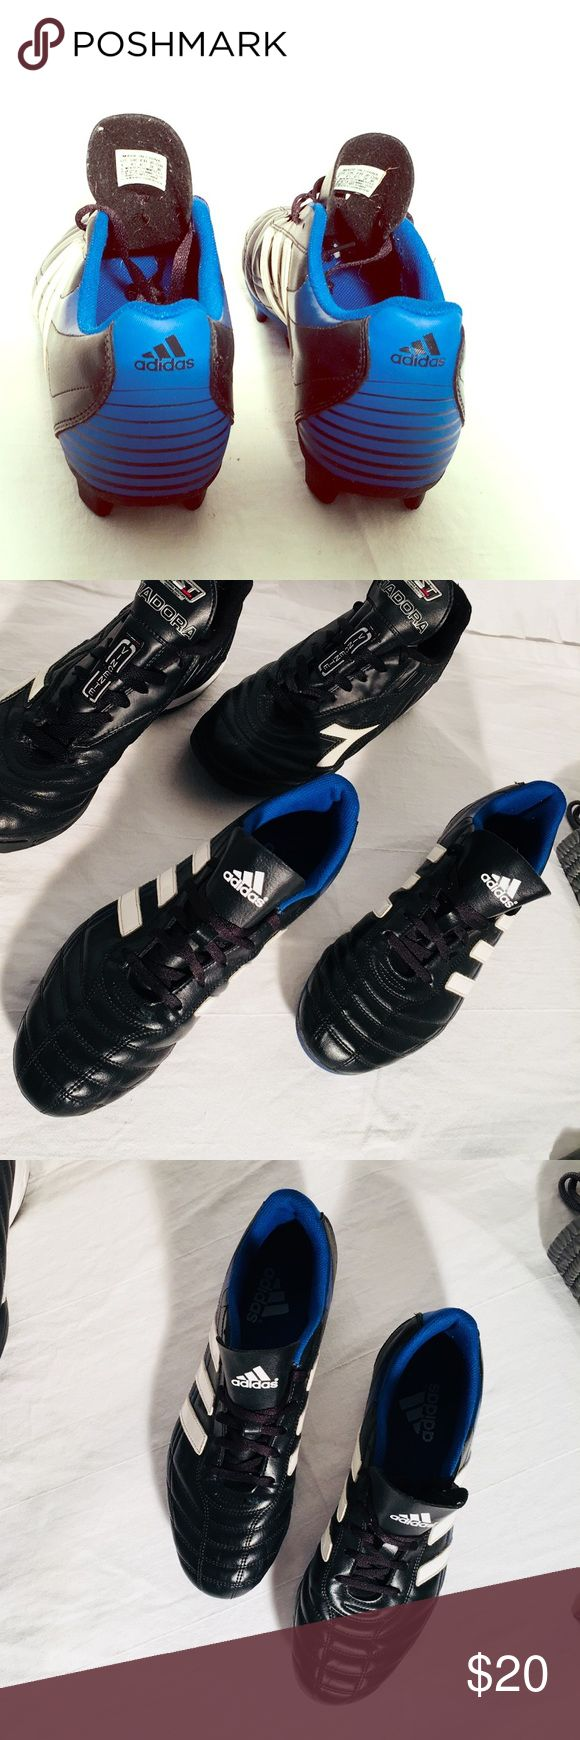 Men's Soccer Shoes Men's Adidas Size 9 Black / Blue Soccer Cleats are in great condition and ready to play! Adidas Shoes Athletic Shoes